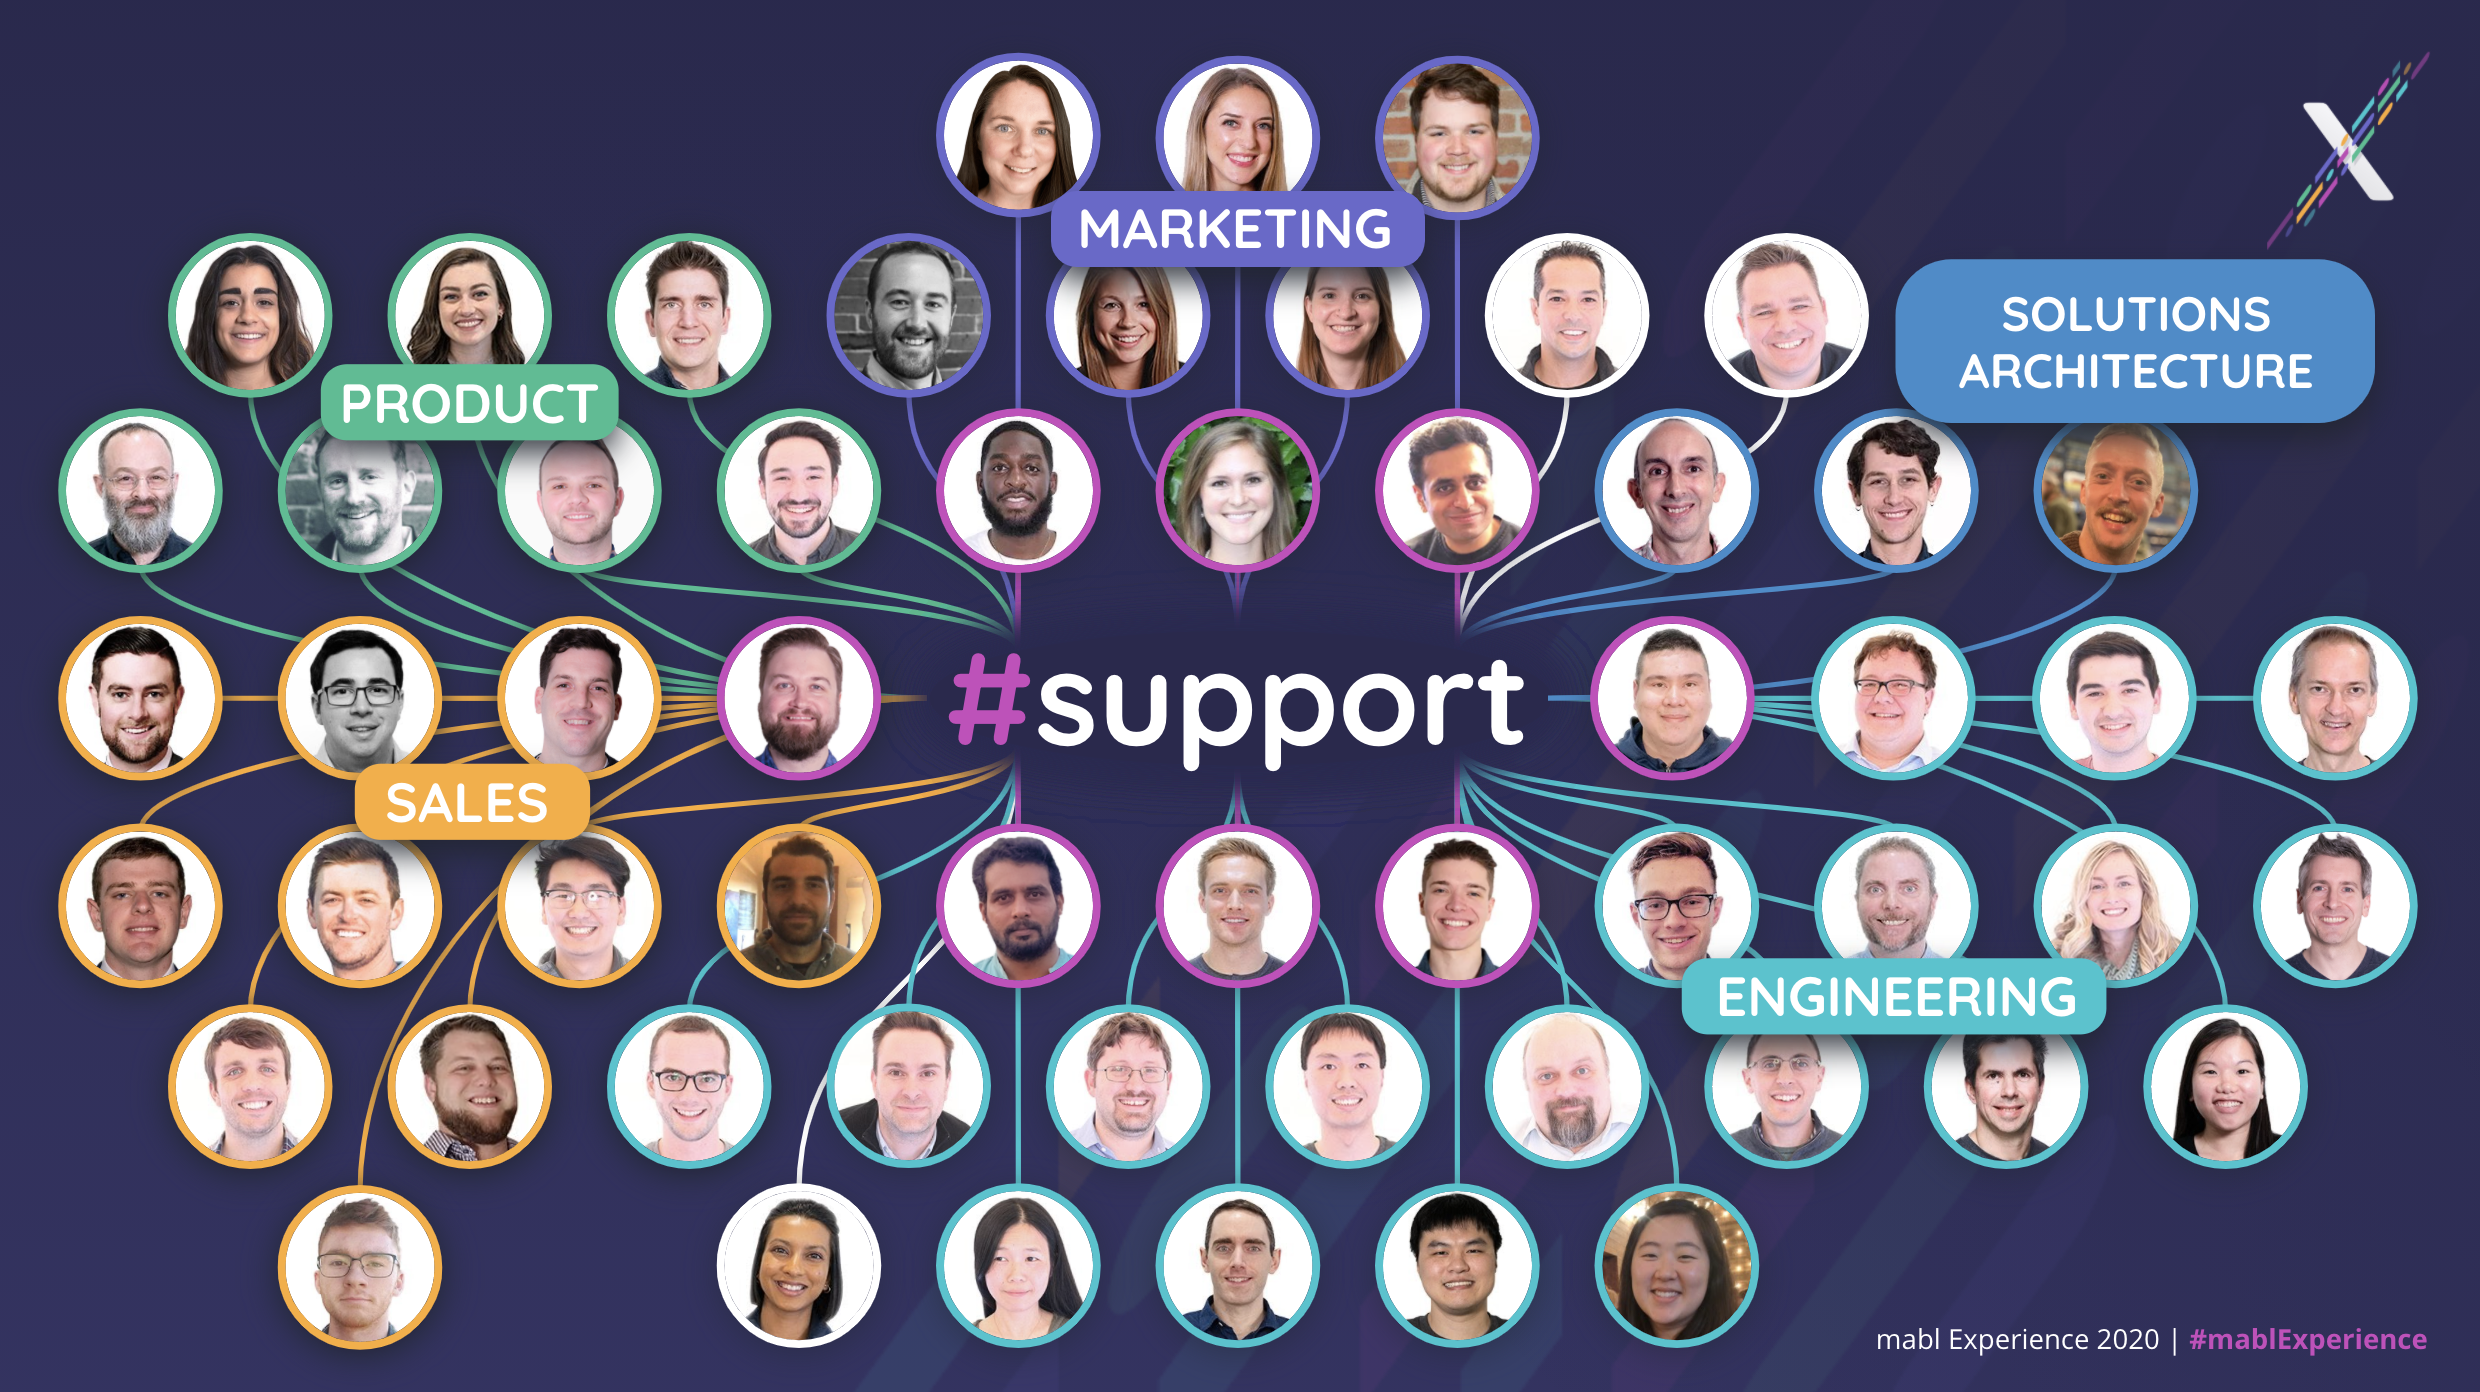 The word support with lines going out to many pictures of employees with labels on each group, like product and marketing.